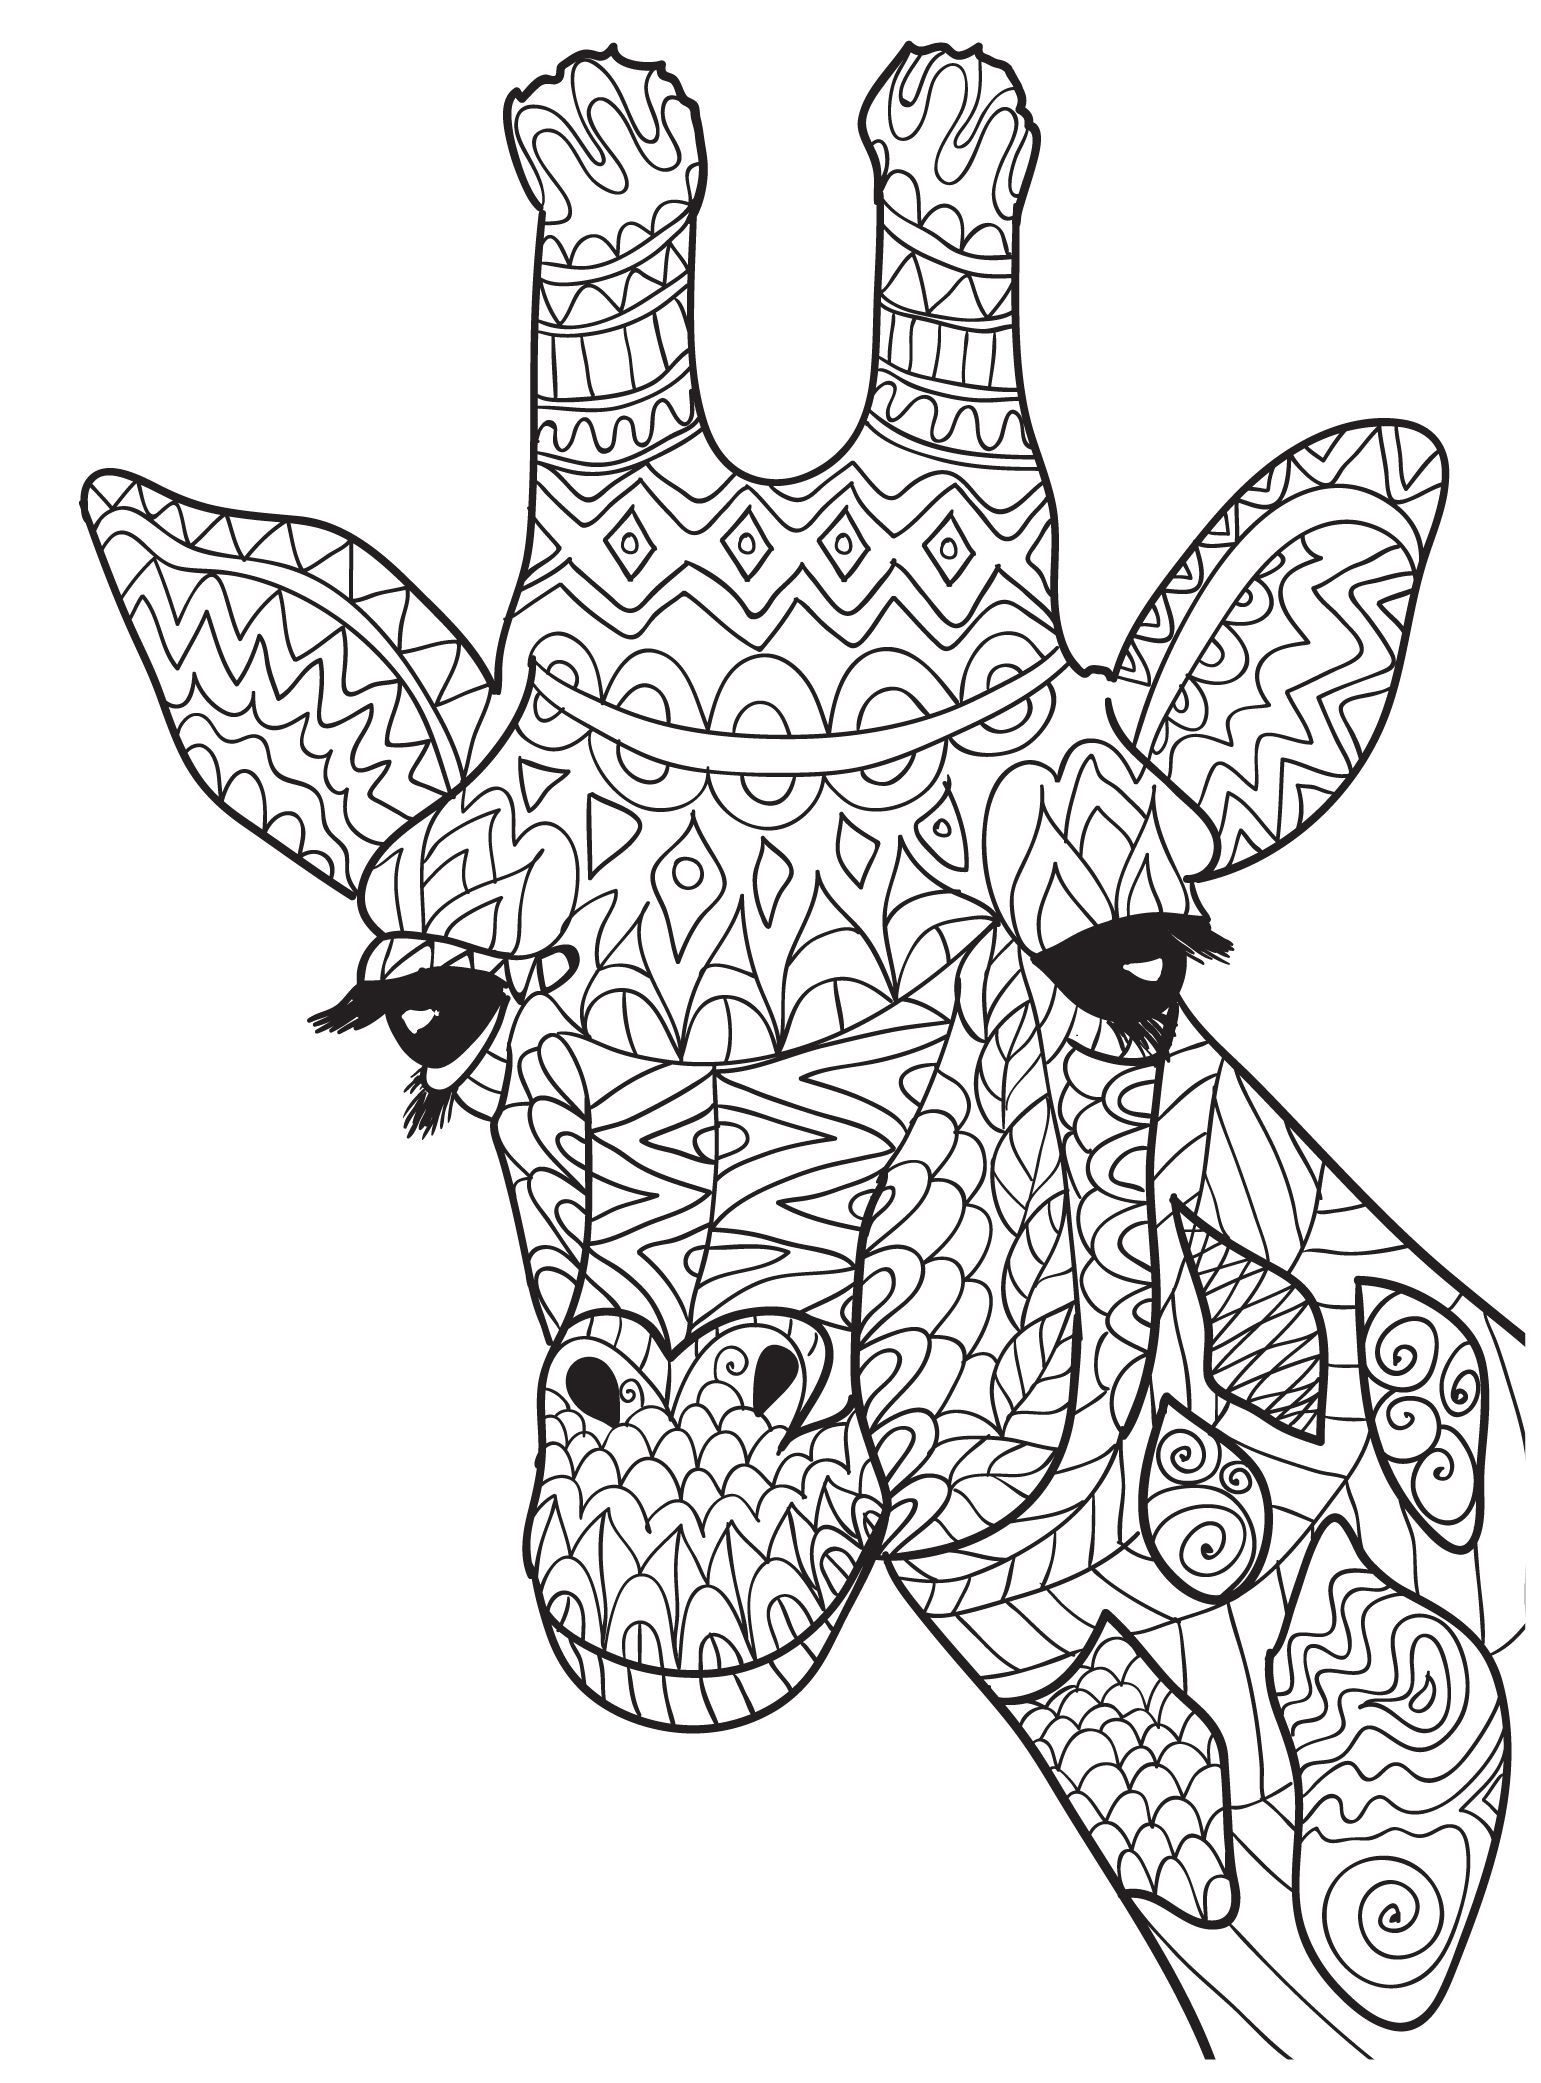 Ten Adult Coloring Pictures For